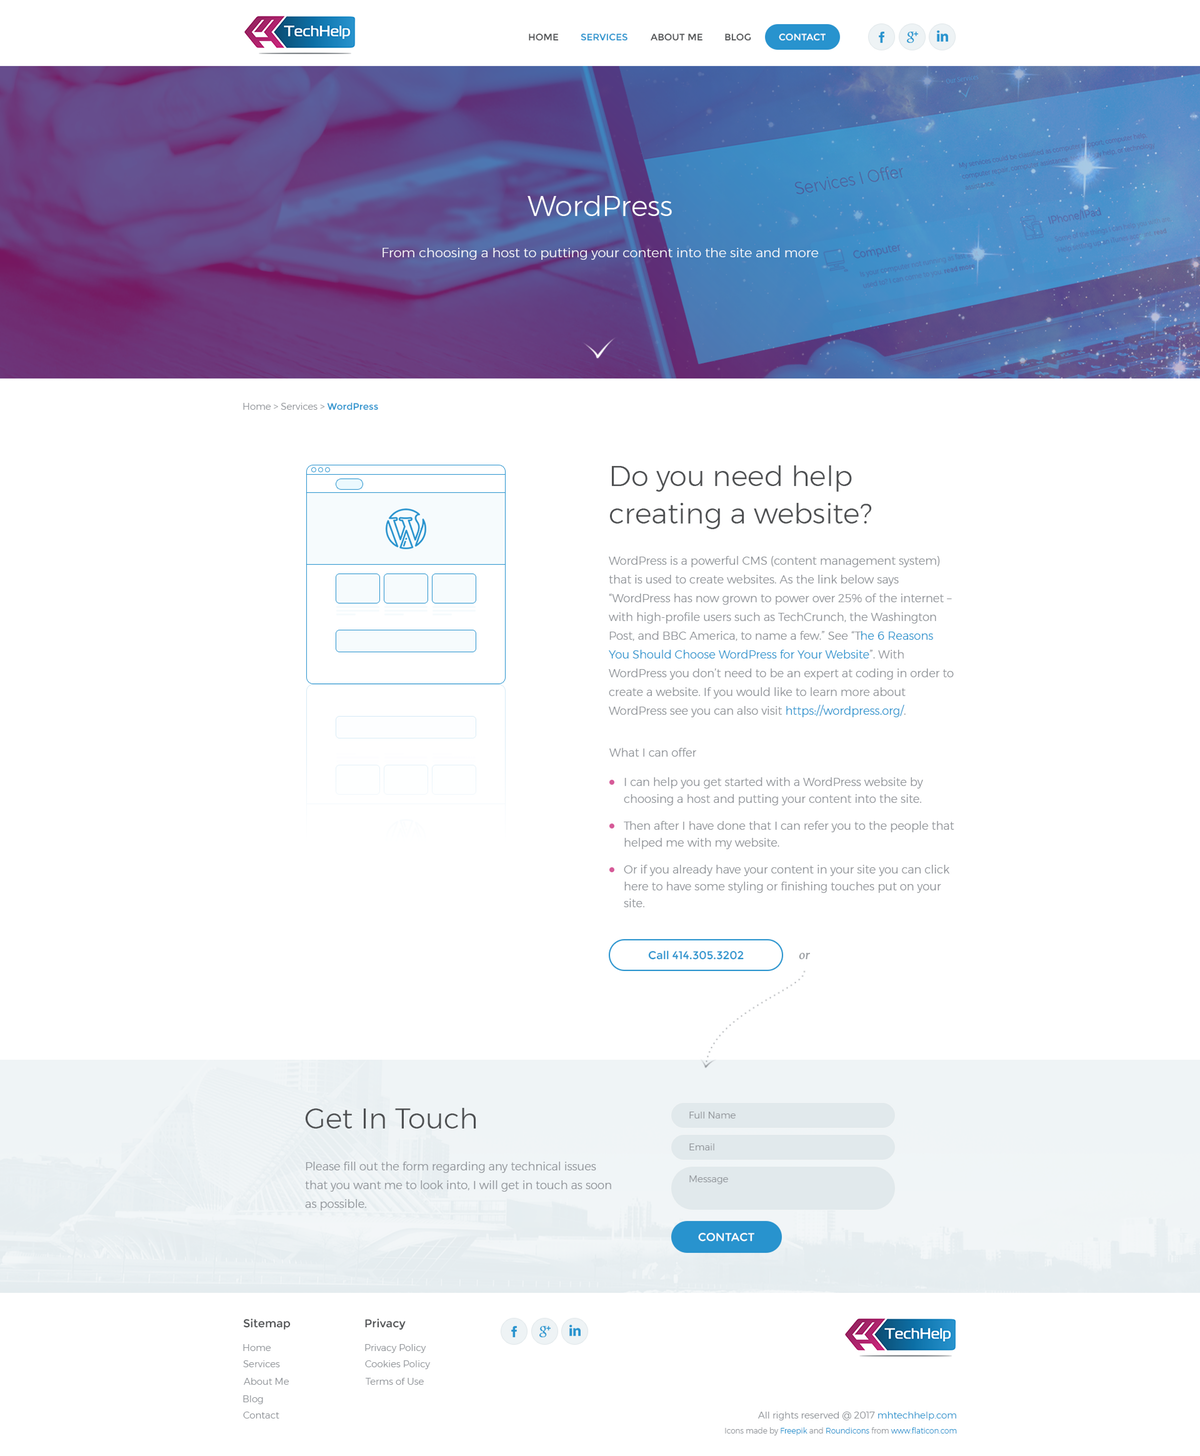 Design/style the rest of website